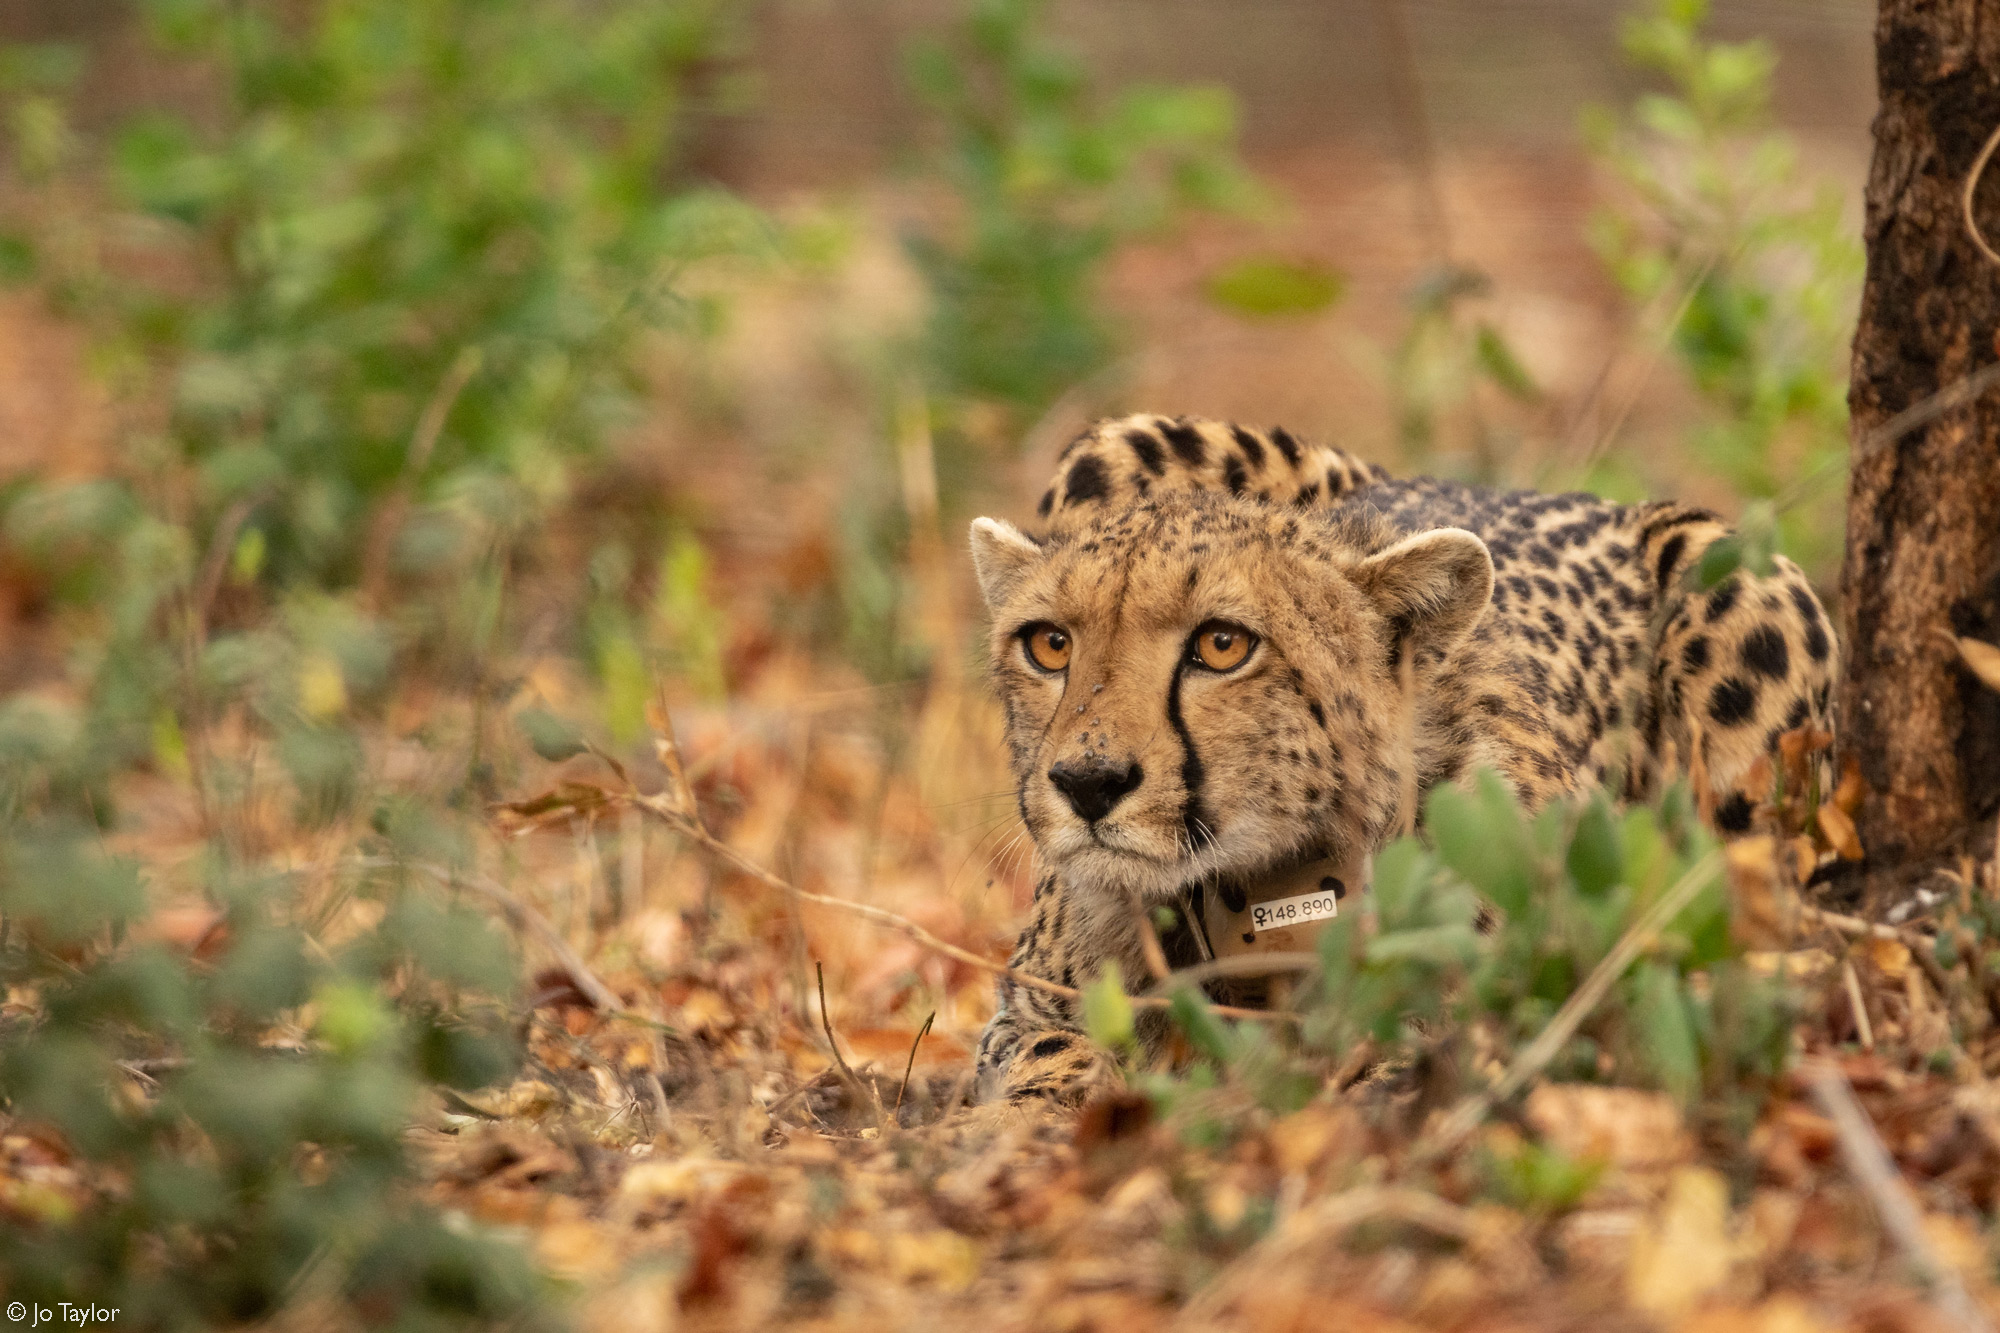 The female cheetah, named Samara, remains cautious and on alert after being released into her new home in Majete Wildlife Reserve in Malawi © Jo Taylor